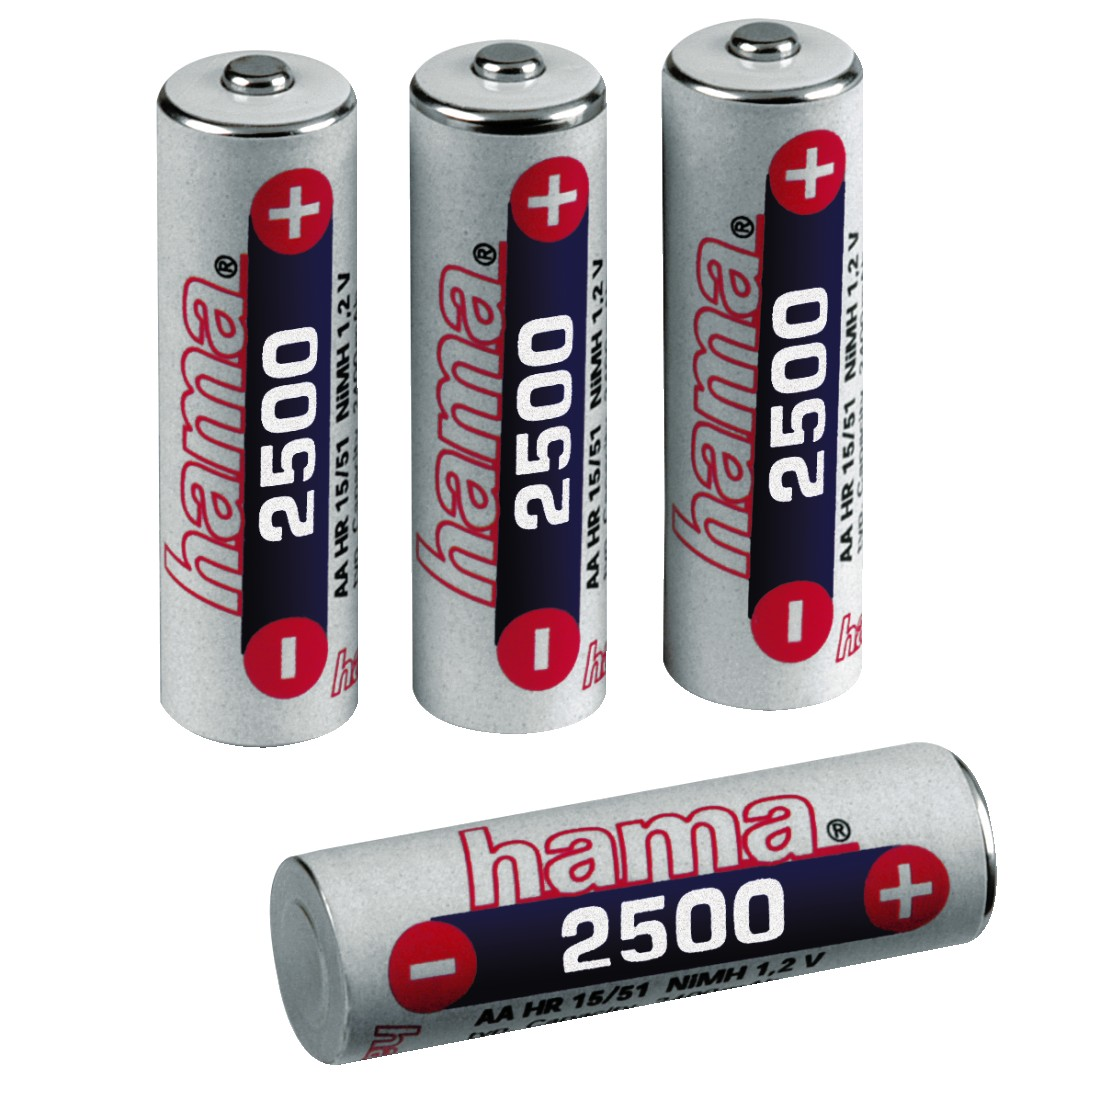 abx High-Res Image - Hama, NiMH Battery 4x AA (Mignon - HR 6) 2500 mAh